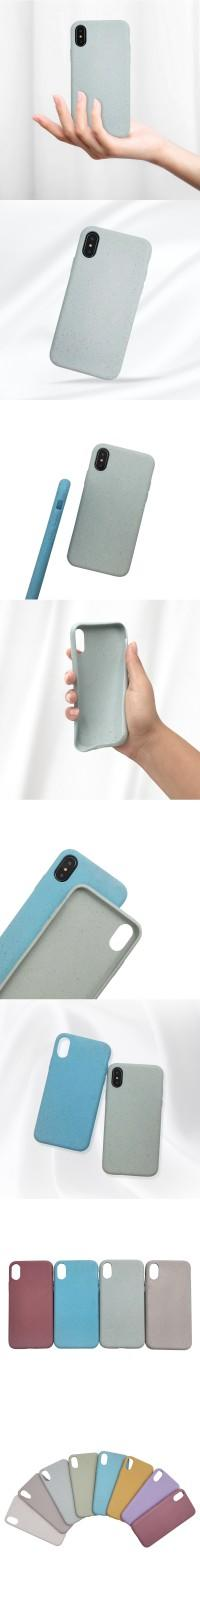 mobile phones covers and cases for store TenChen Tech-1